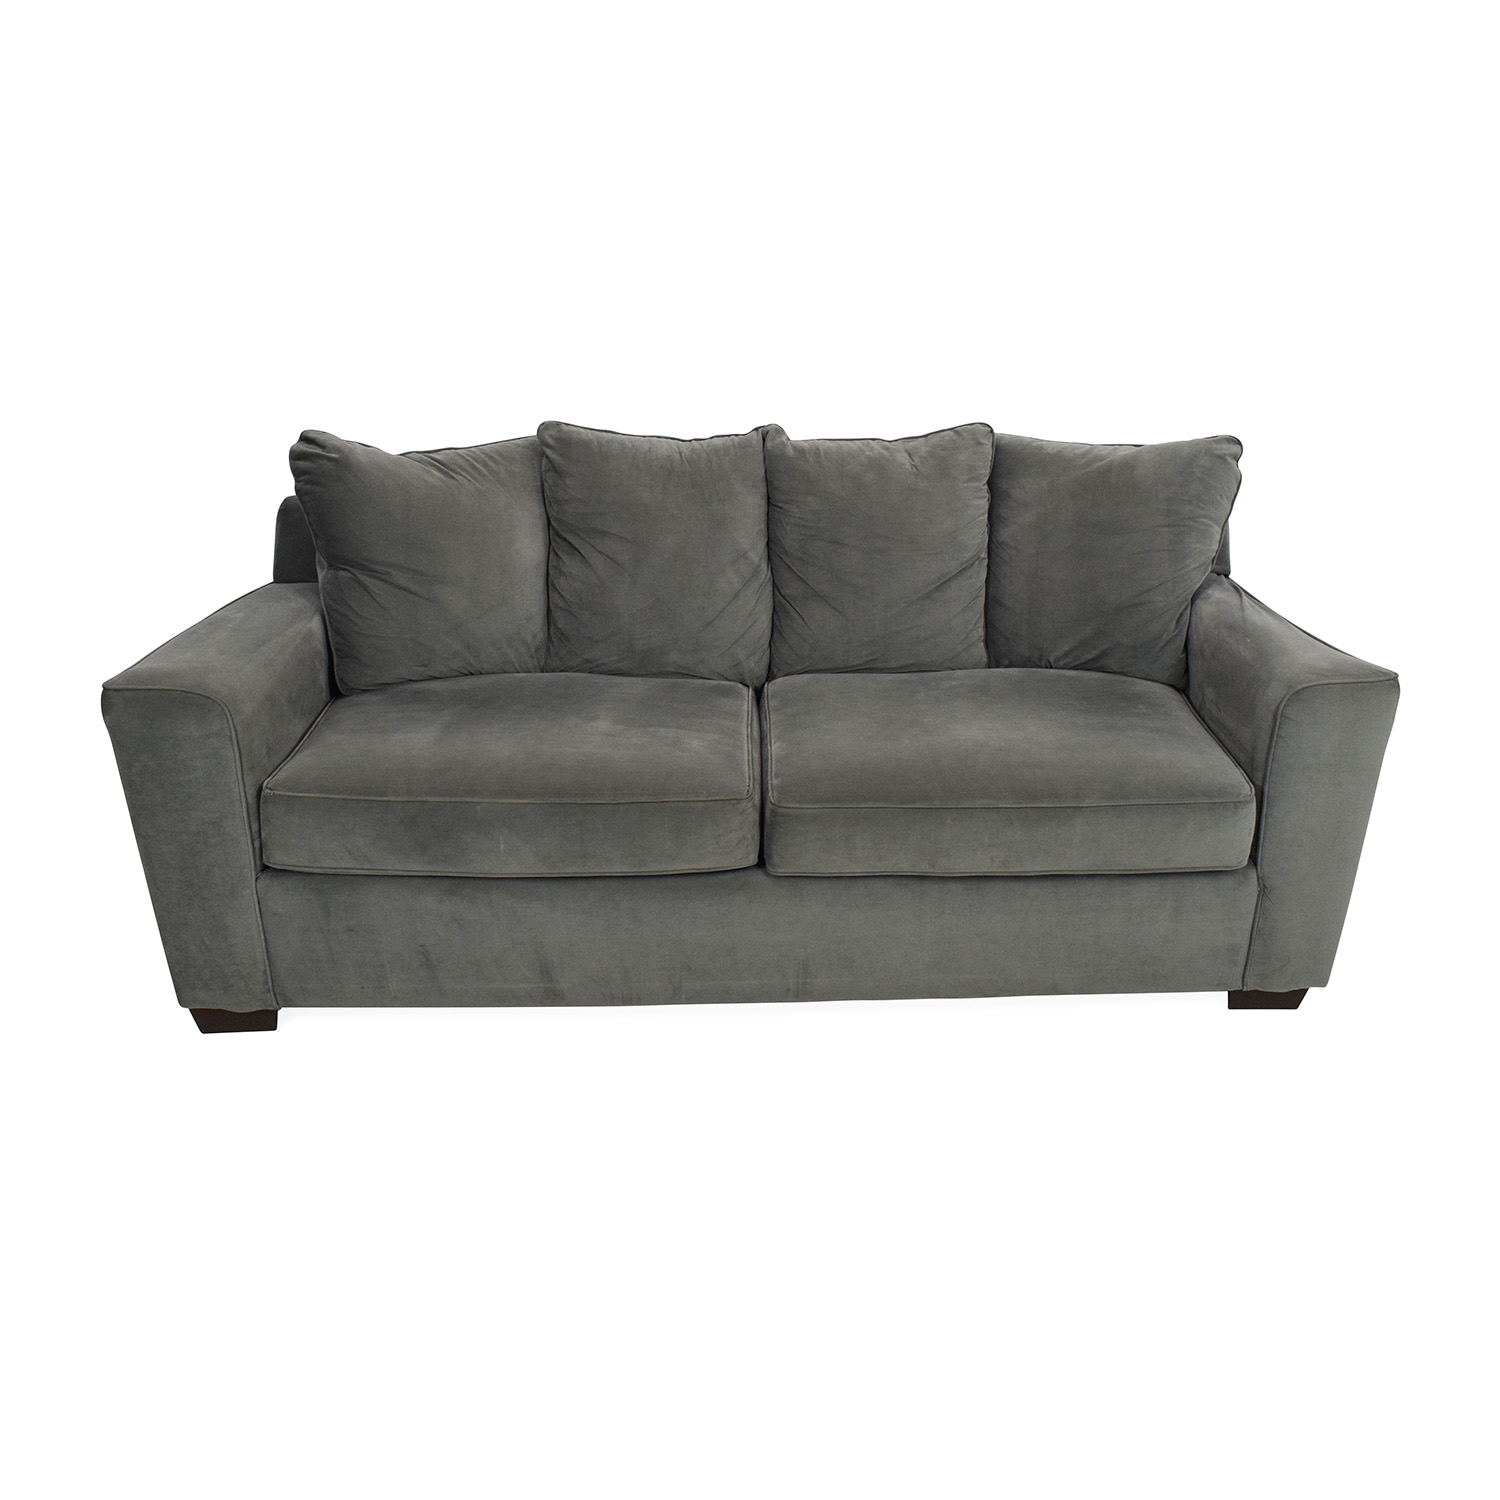 shop Jennifer Convertibles Grey Couch Jennifer Convertibles